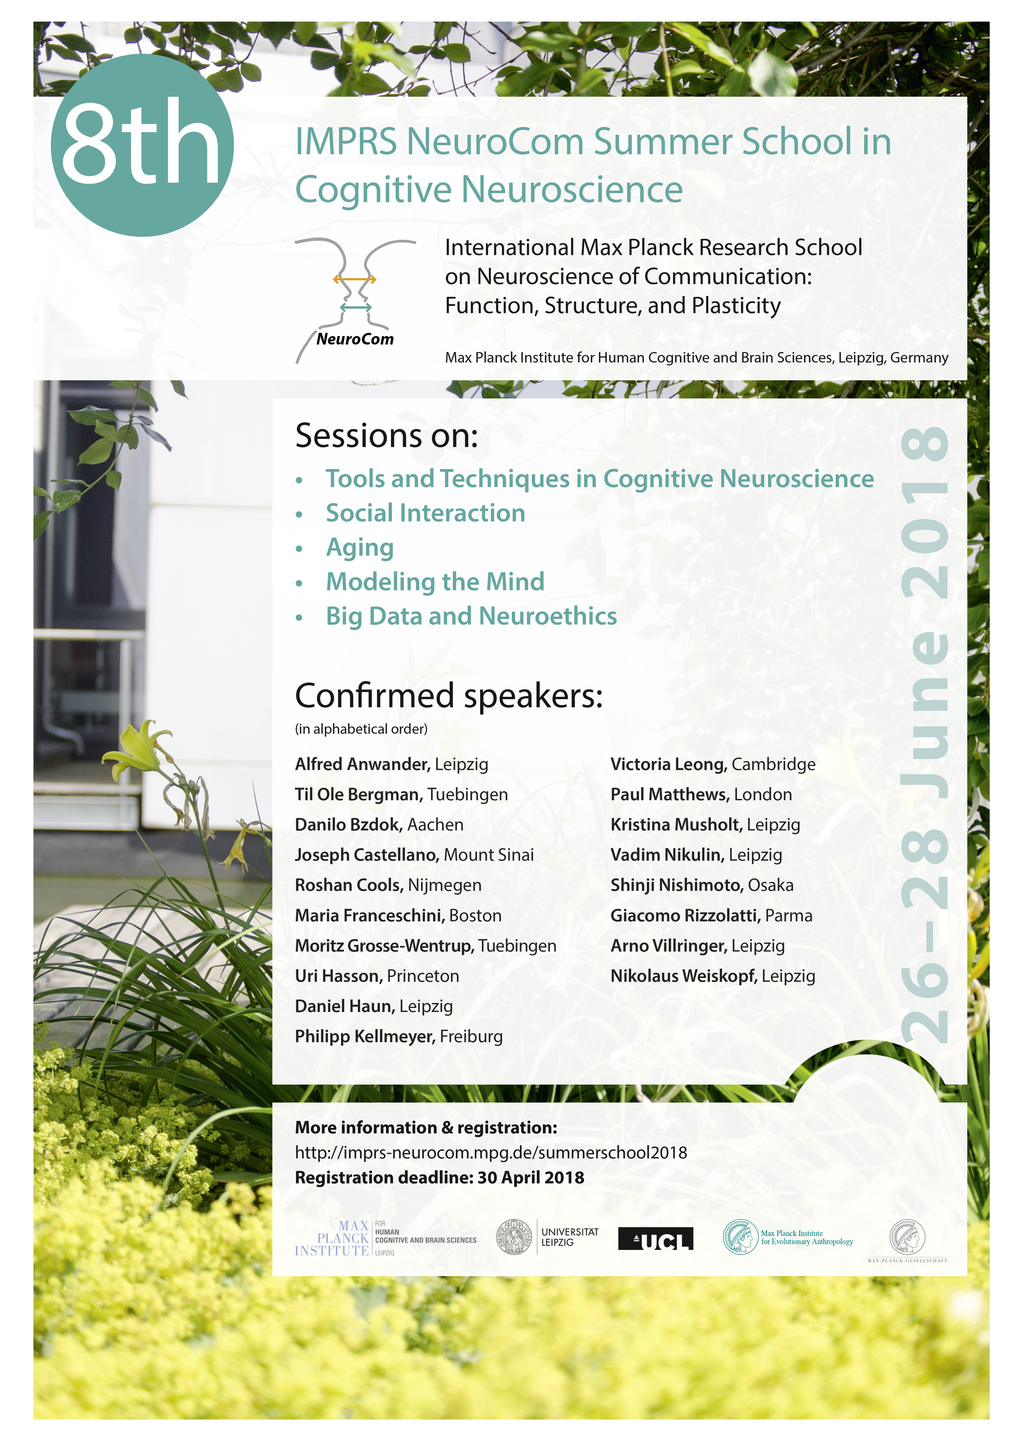 We are pleased to invite you to the 8th IMPRS NeuroCom Summer School in Cognitive Neuroscience, which will take place from 26-28 June 2018 in Leipzig, Germany at the Max Planck Institute for Human Cognitive and Brain Sciences. The summer school will bring together well-known scientists, Post-Docs and early career researchers from all over the world to enlighten and discuss some key topics of Cognitive Neuroscience.